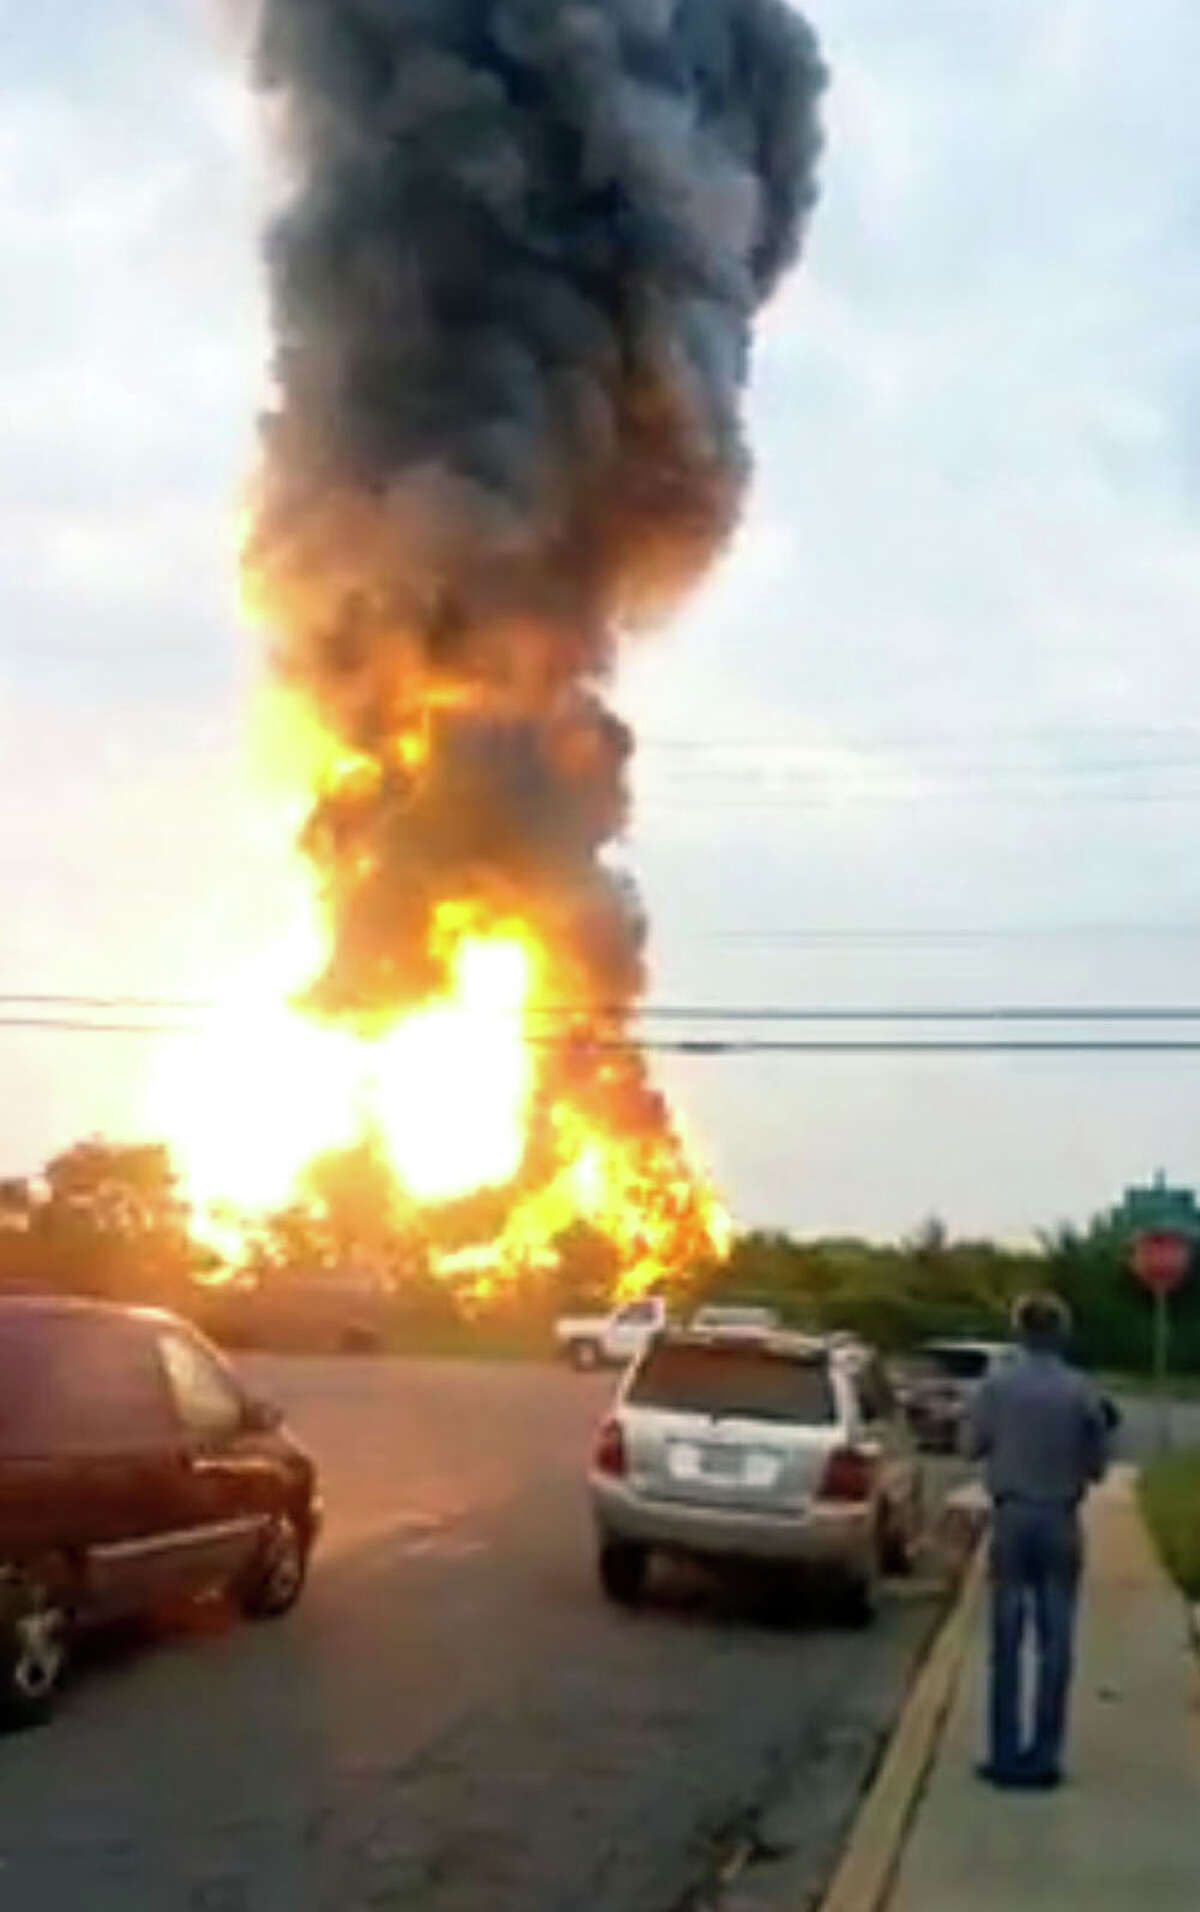 This still taken from video provided by James LeBrun shows an explosion outside Baltimore on Tuesday, May, 28, 2013. Baltimore County fire officials say a train derailed in a Baltimore suburb on Tuesday and an explosion was heard in the area. A fire spokeswoman says the train derailed about 2 p.m. Tuesday in White Marsh, Md. (AP Photo/James LeBrun)